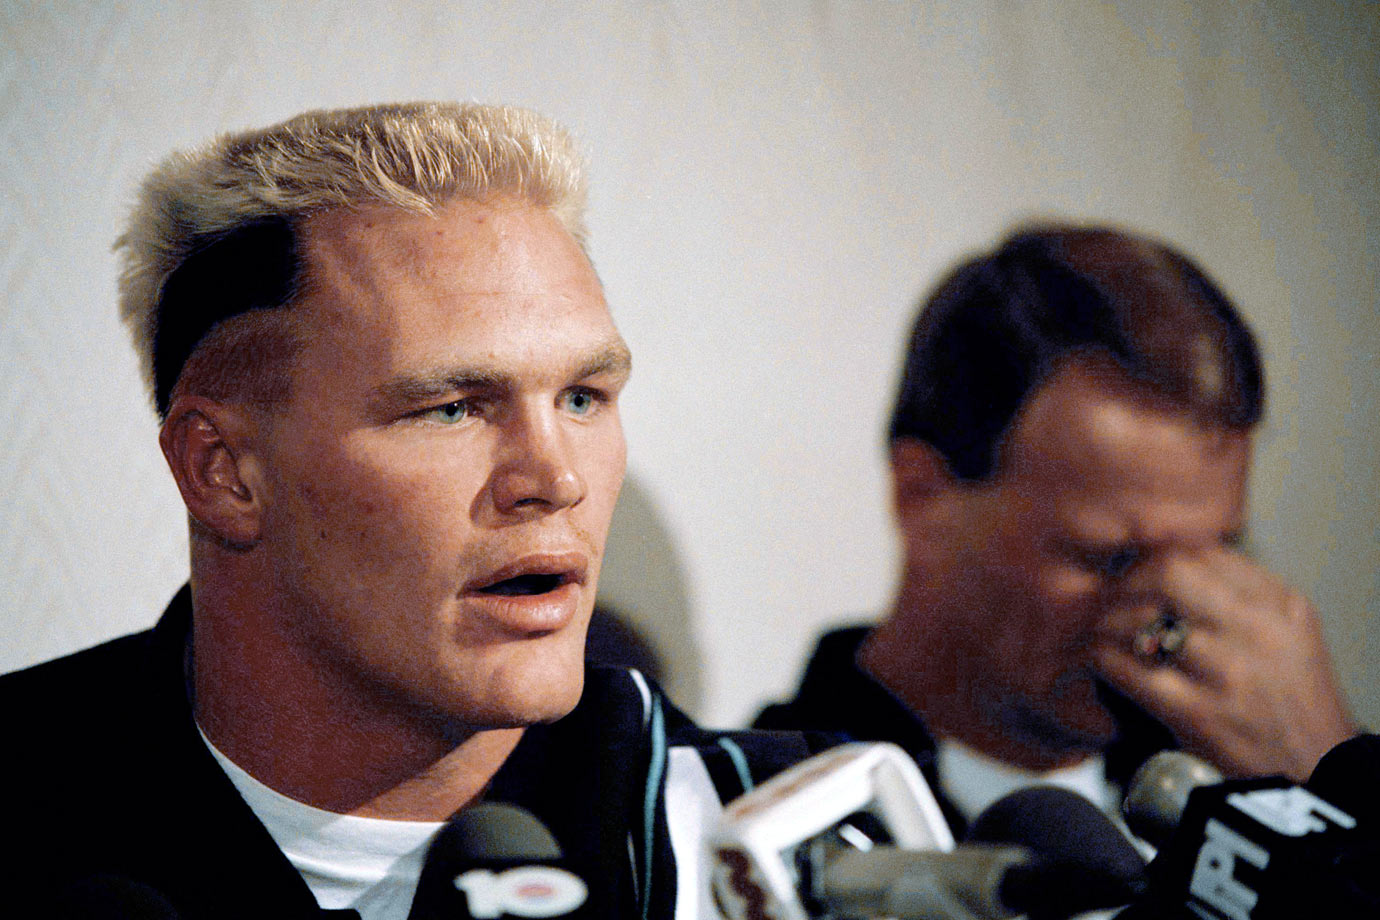 With Oklahoma head coach Barry Switzer reacting in the background, Brian Bosworth speaks to the press about his being barred from playing in the Orange Bowl on New Years Day.